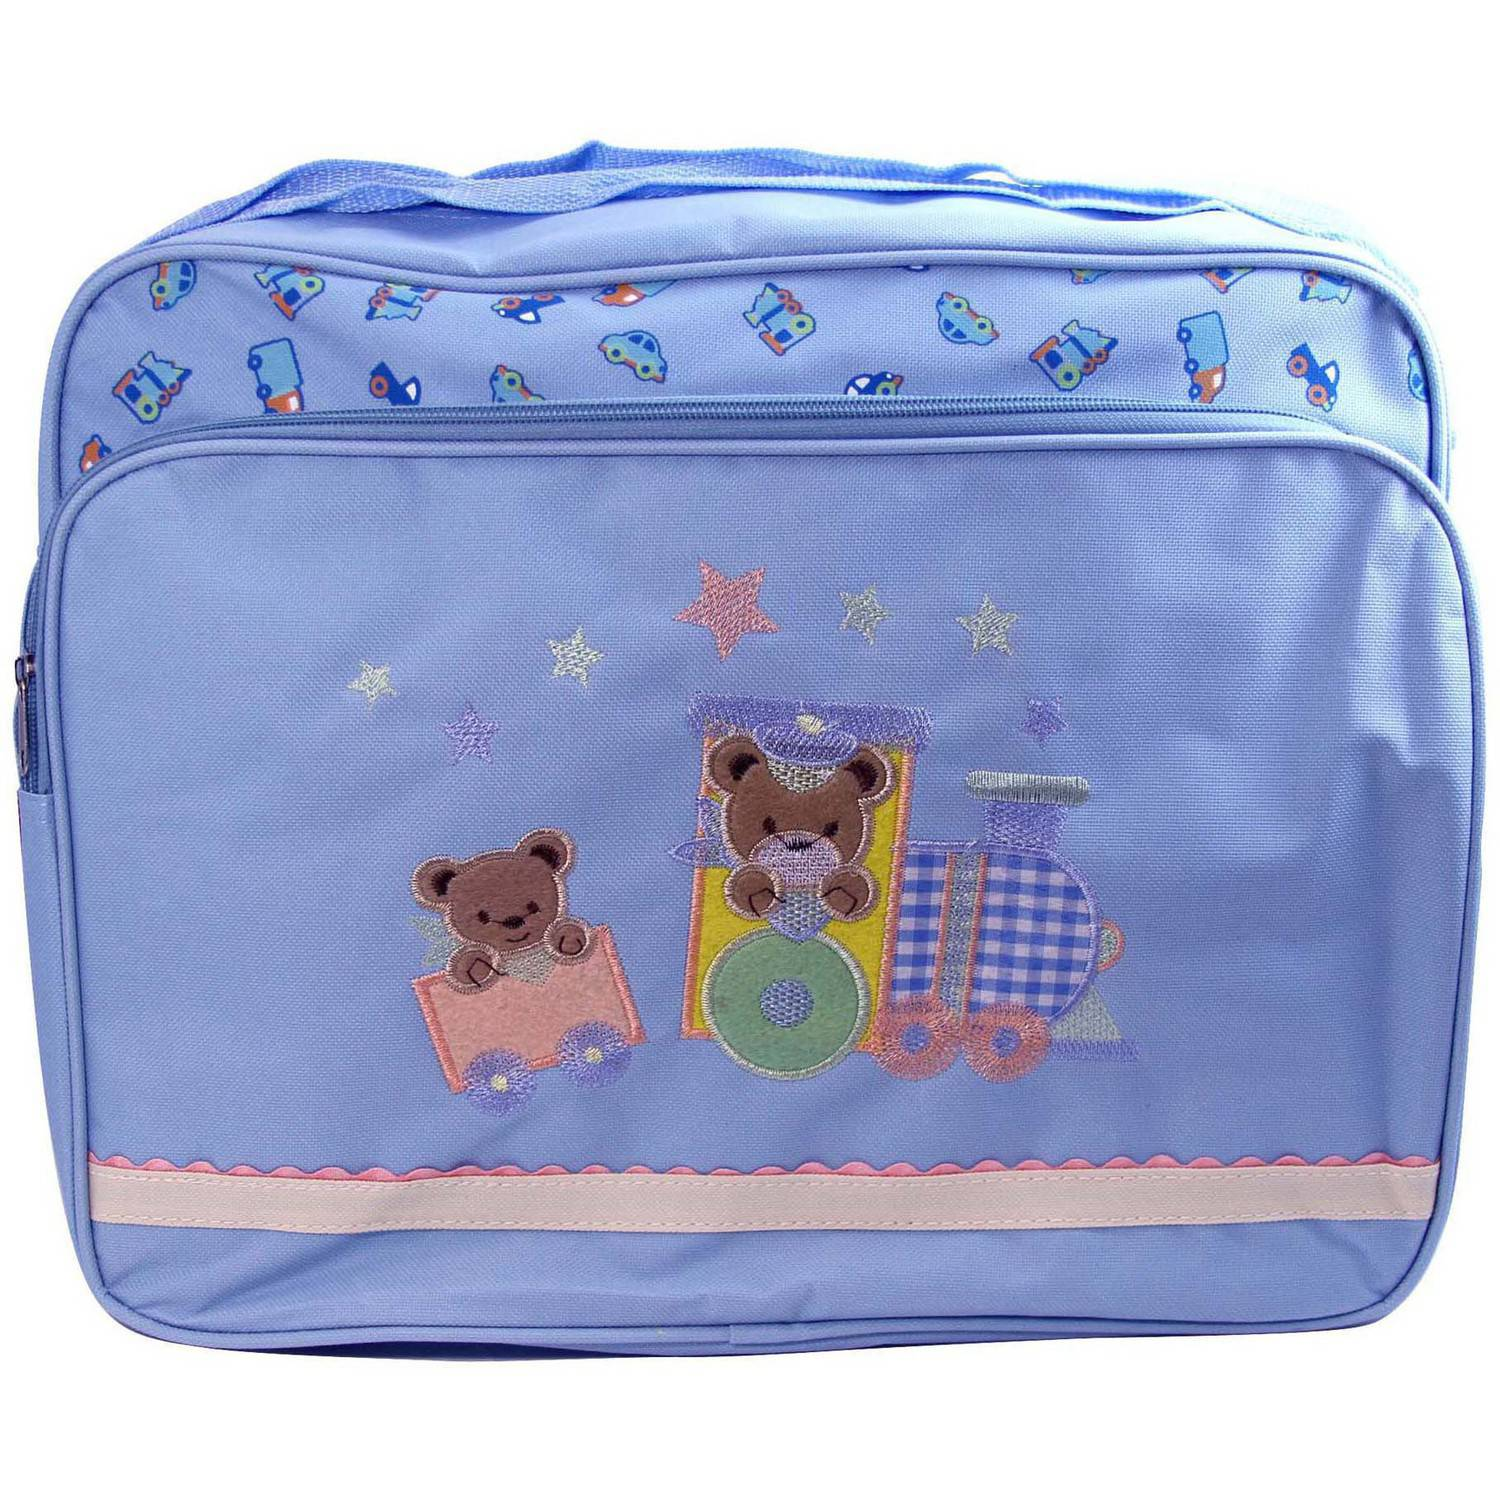 Baby Ziggles Heavy-Duty Diaper Bag, Light Blue